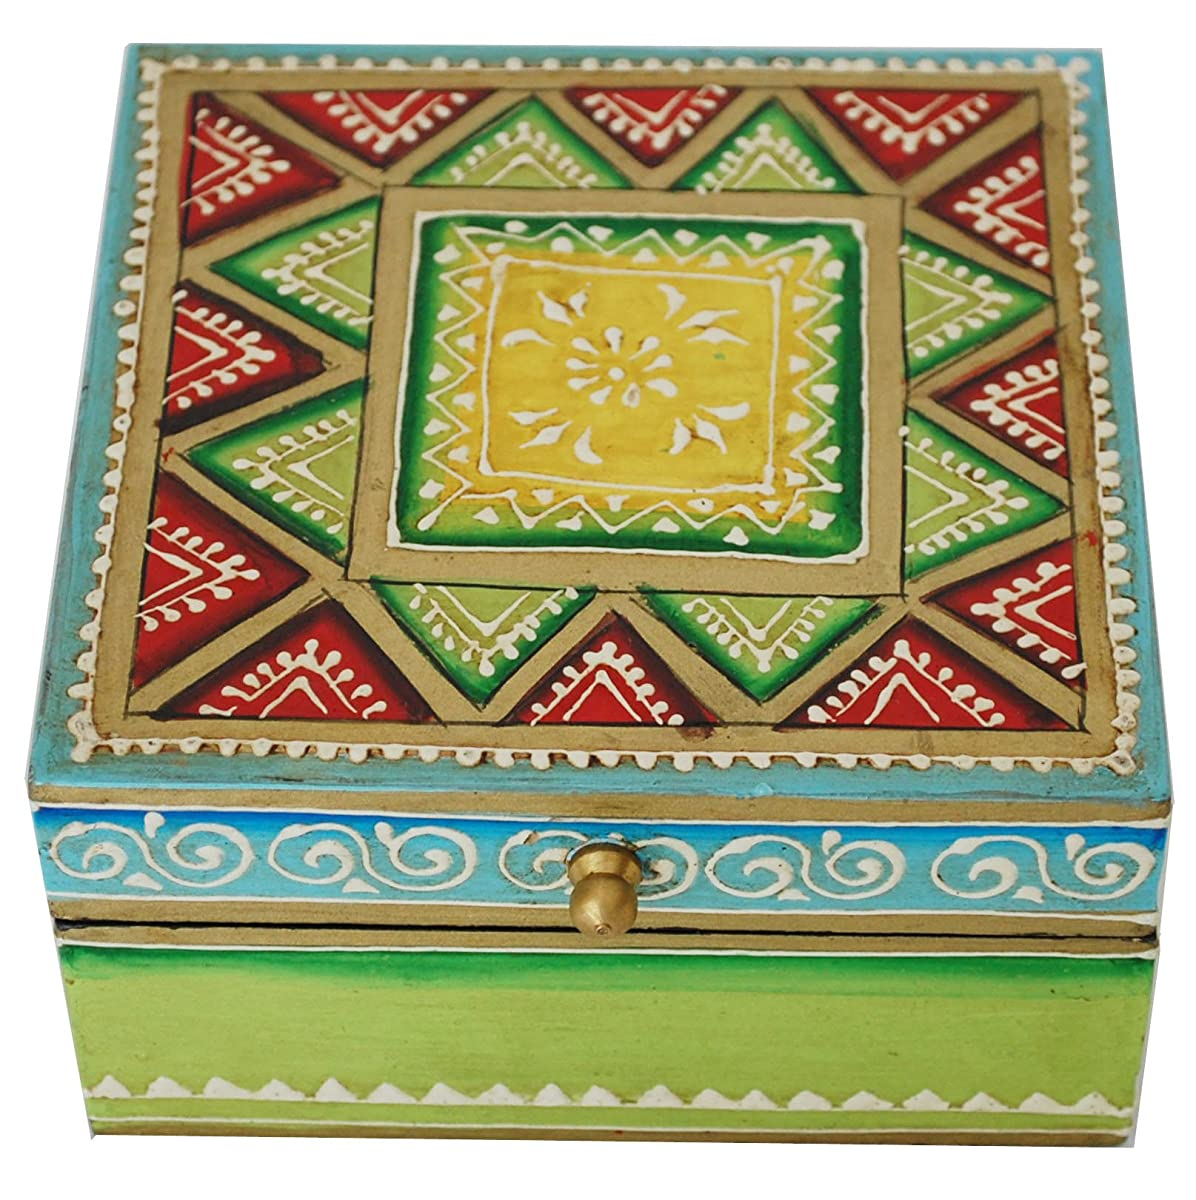 Box with Cone Painting Art Green Wooden Decorative Box